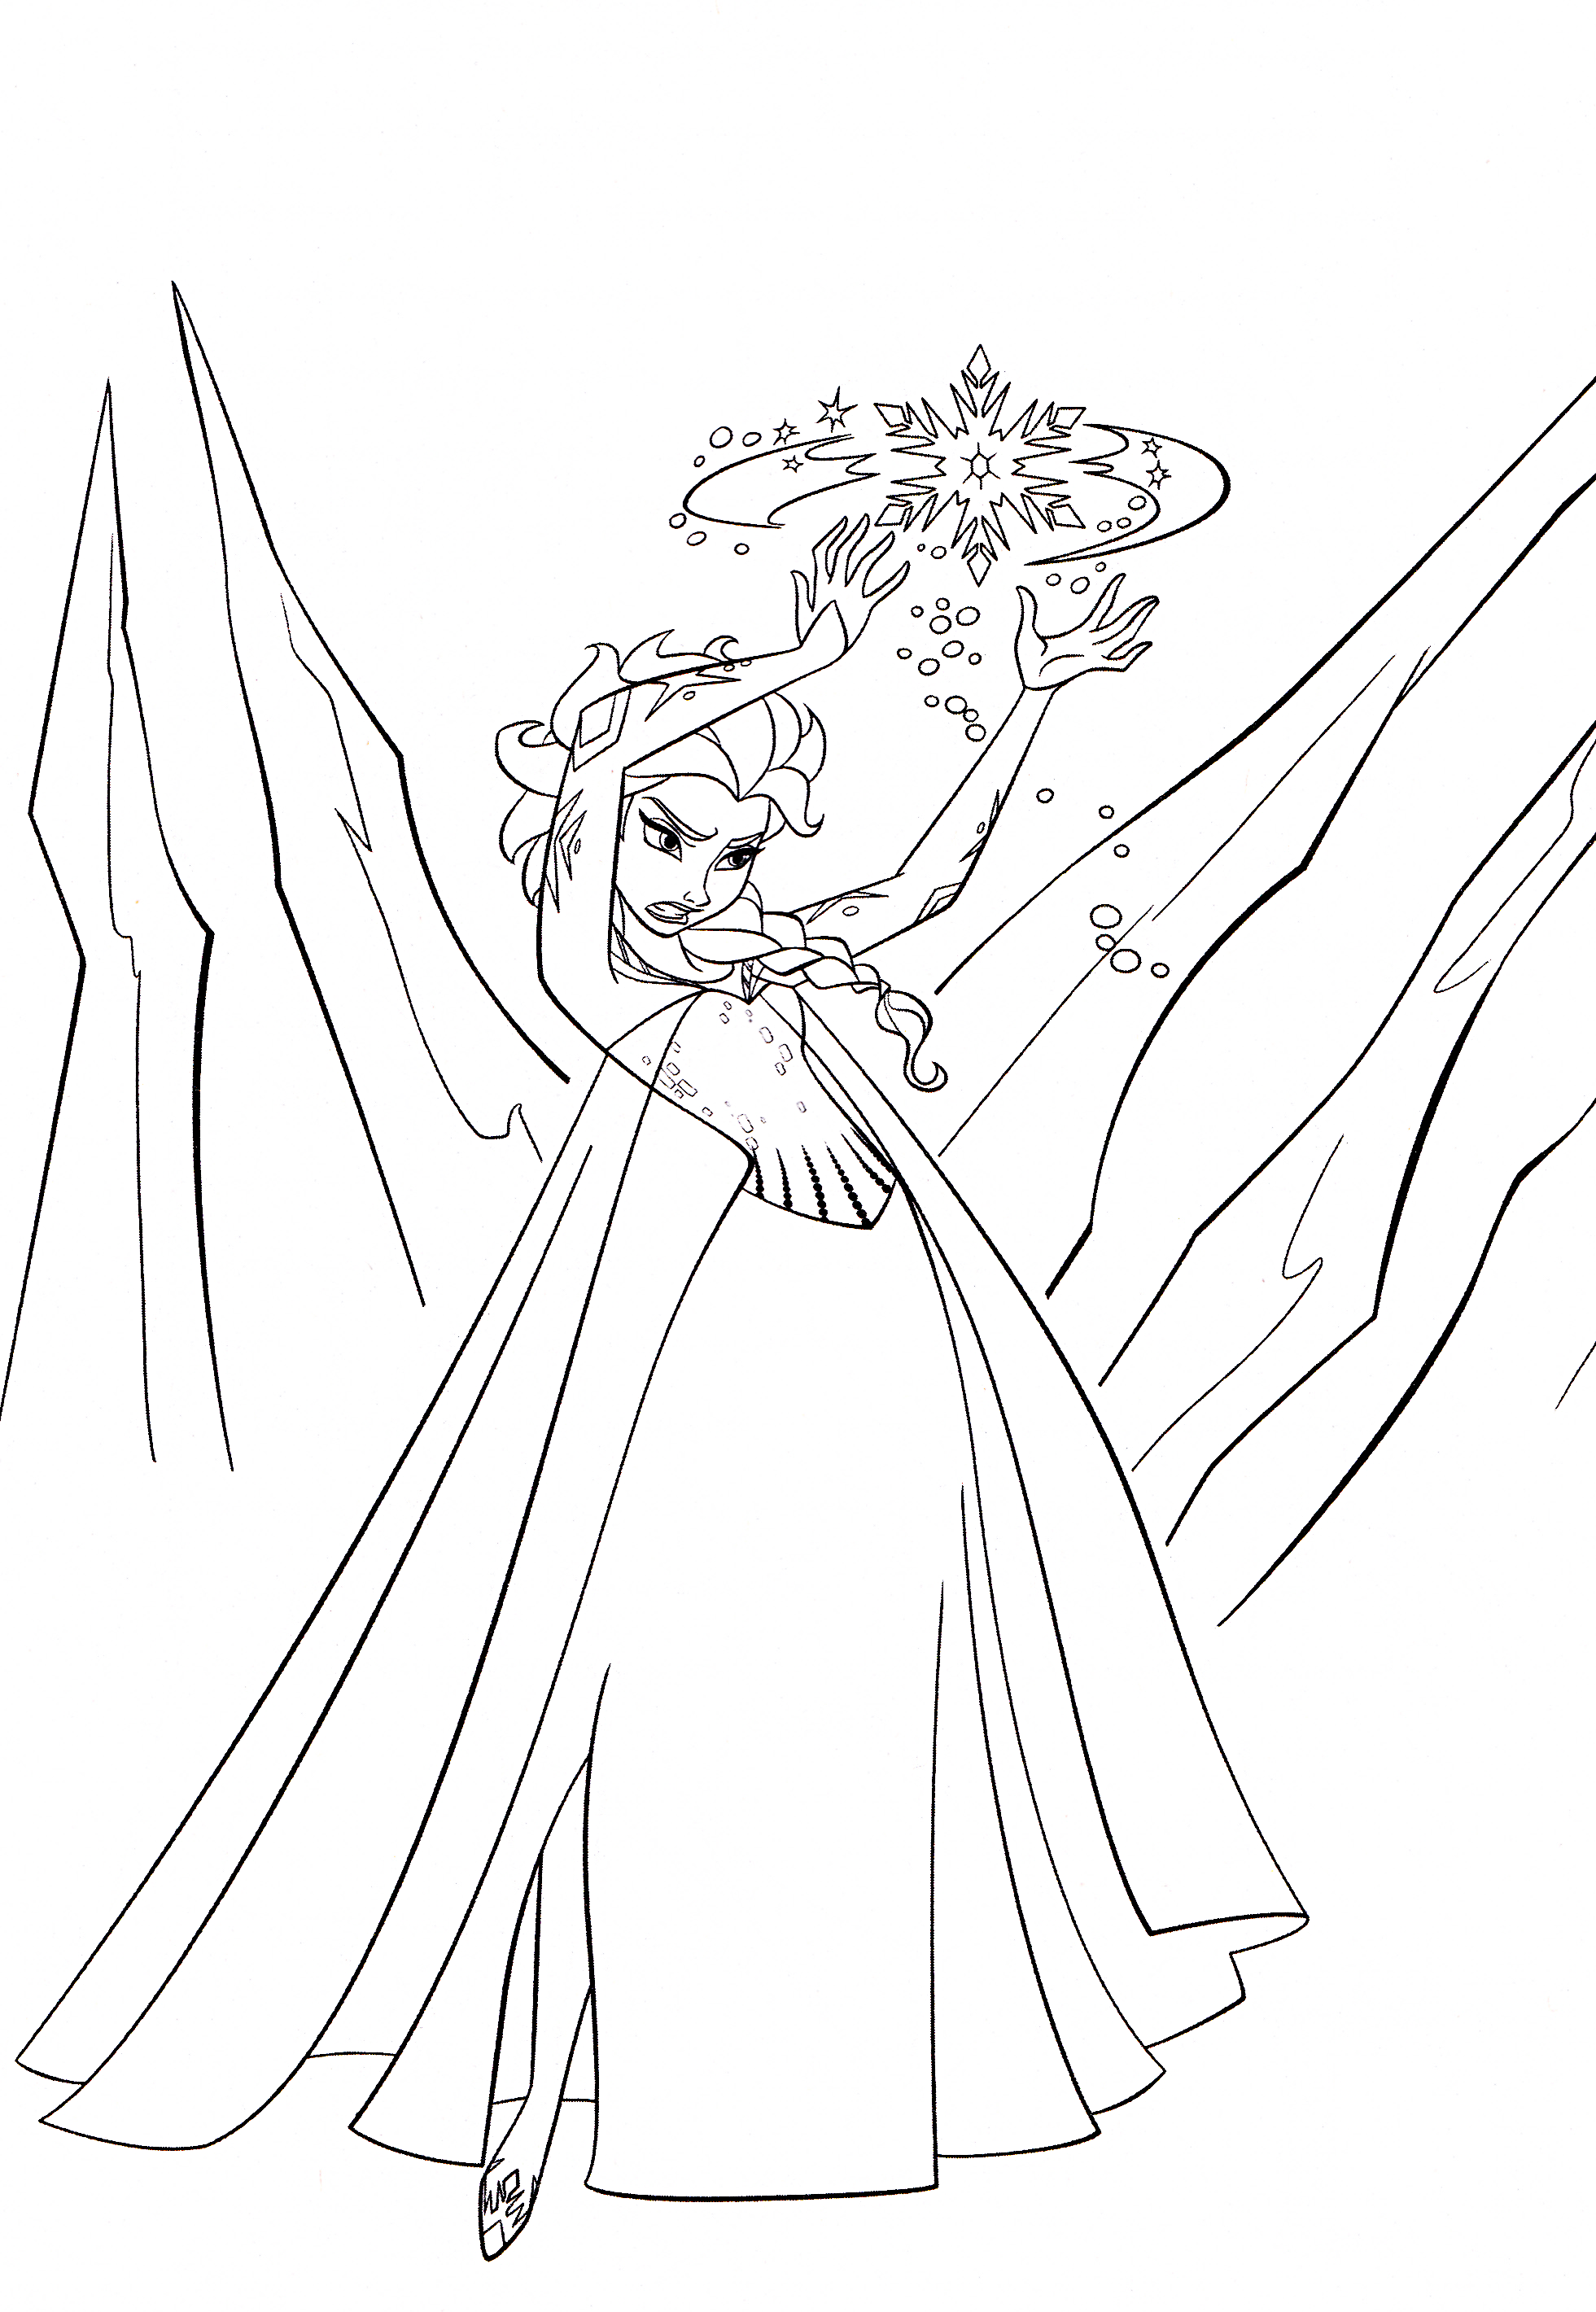 Queen Elsa Coloring Pages To Print Sketch Coloring Page